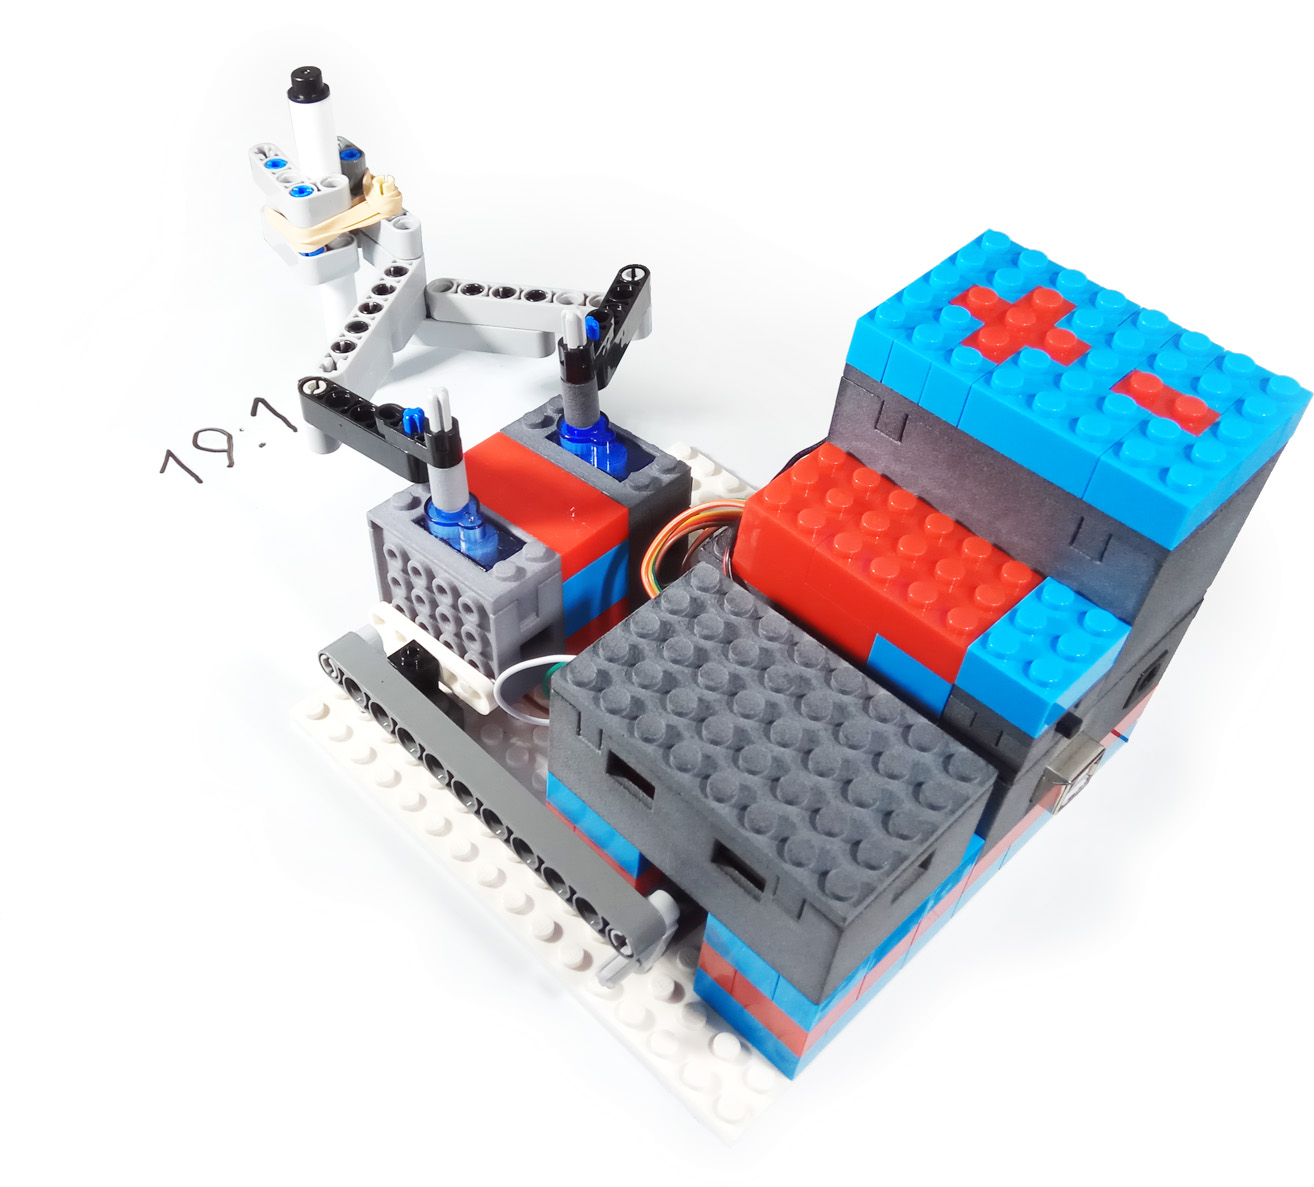 Lego Robotsblog Digital Voice Record And Playback Project By Isd2560p Eeweb Leguino Delivers Standard Brick Compatible Cases For Common Arduino Raspberry Pi Electronic Components To Enhance Projects Opens Them